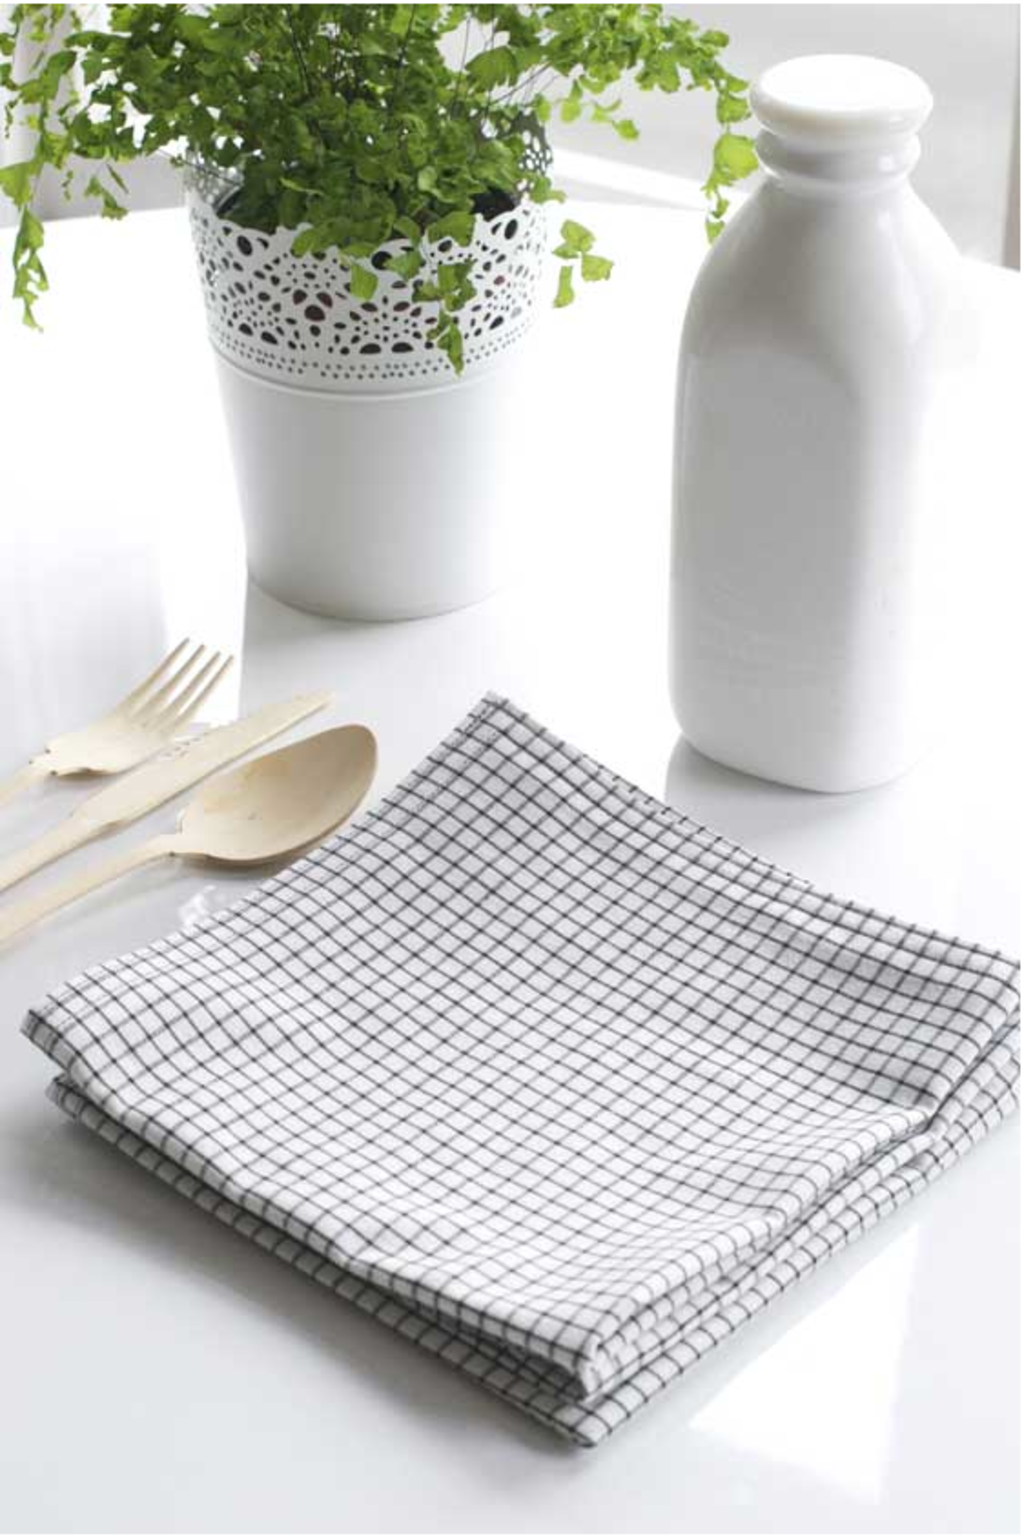 Easy DIY Project: Making Your Own Cloth Napkins | Apartment Therapy